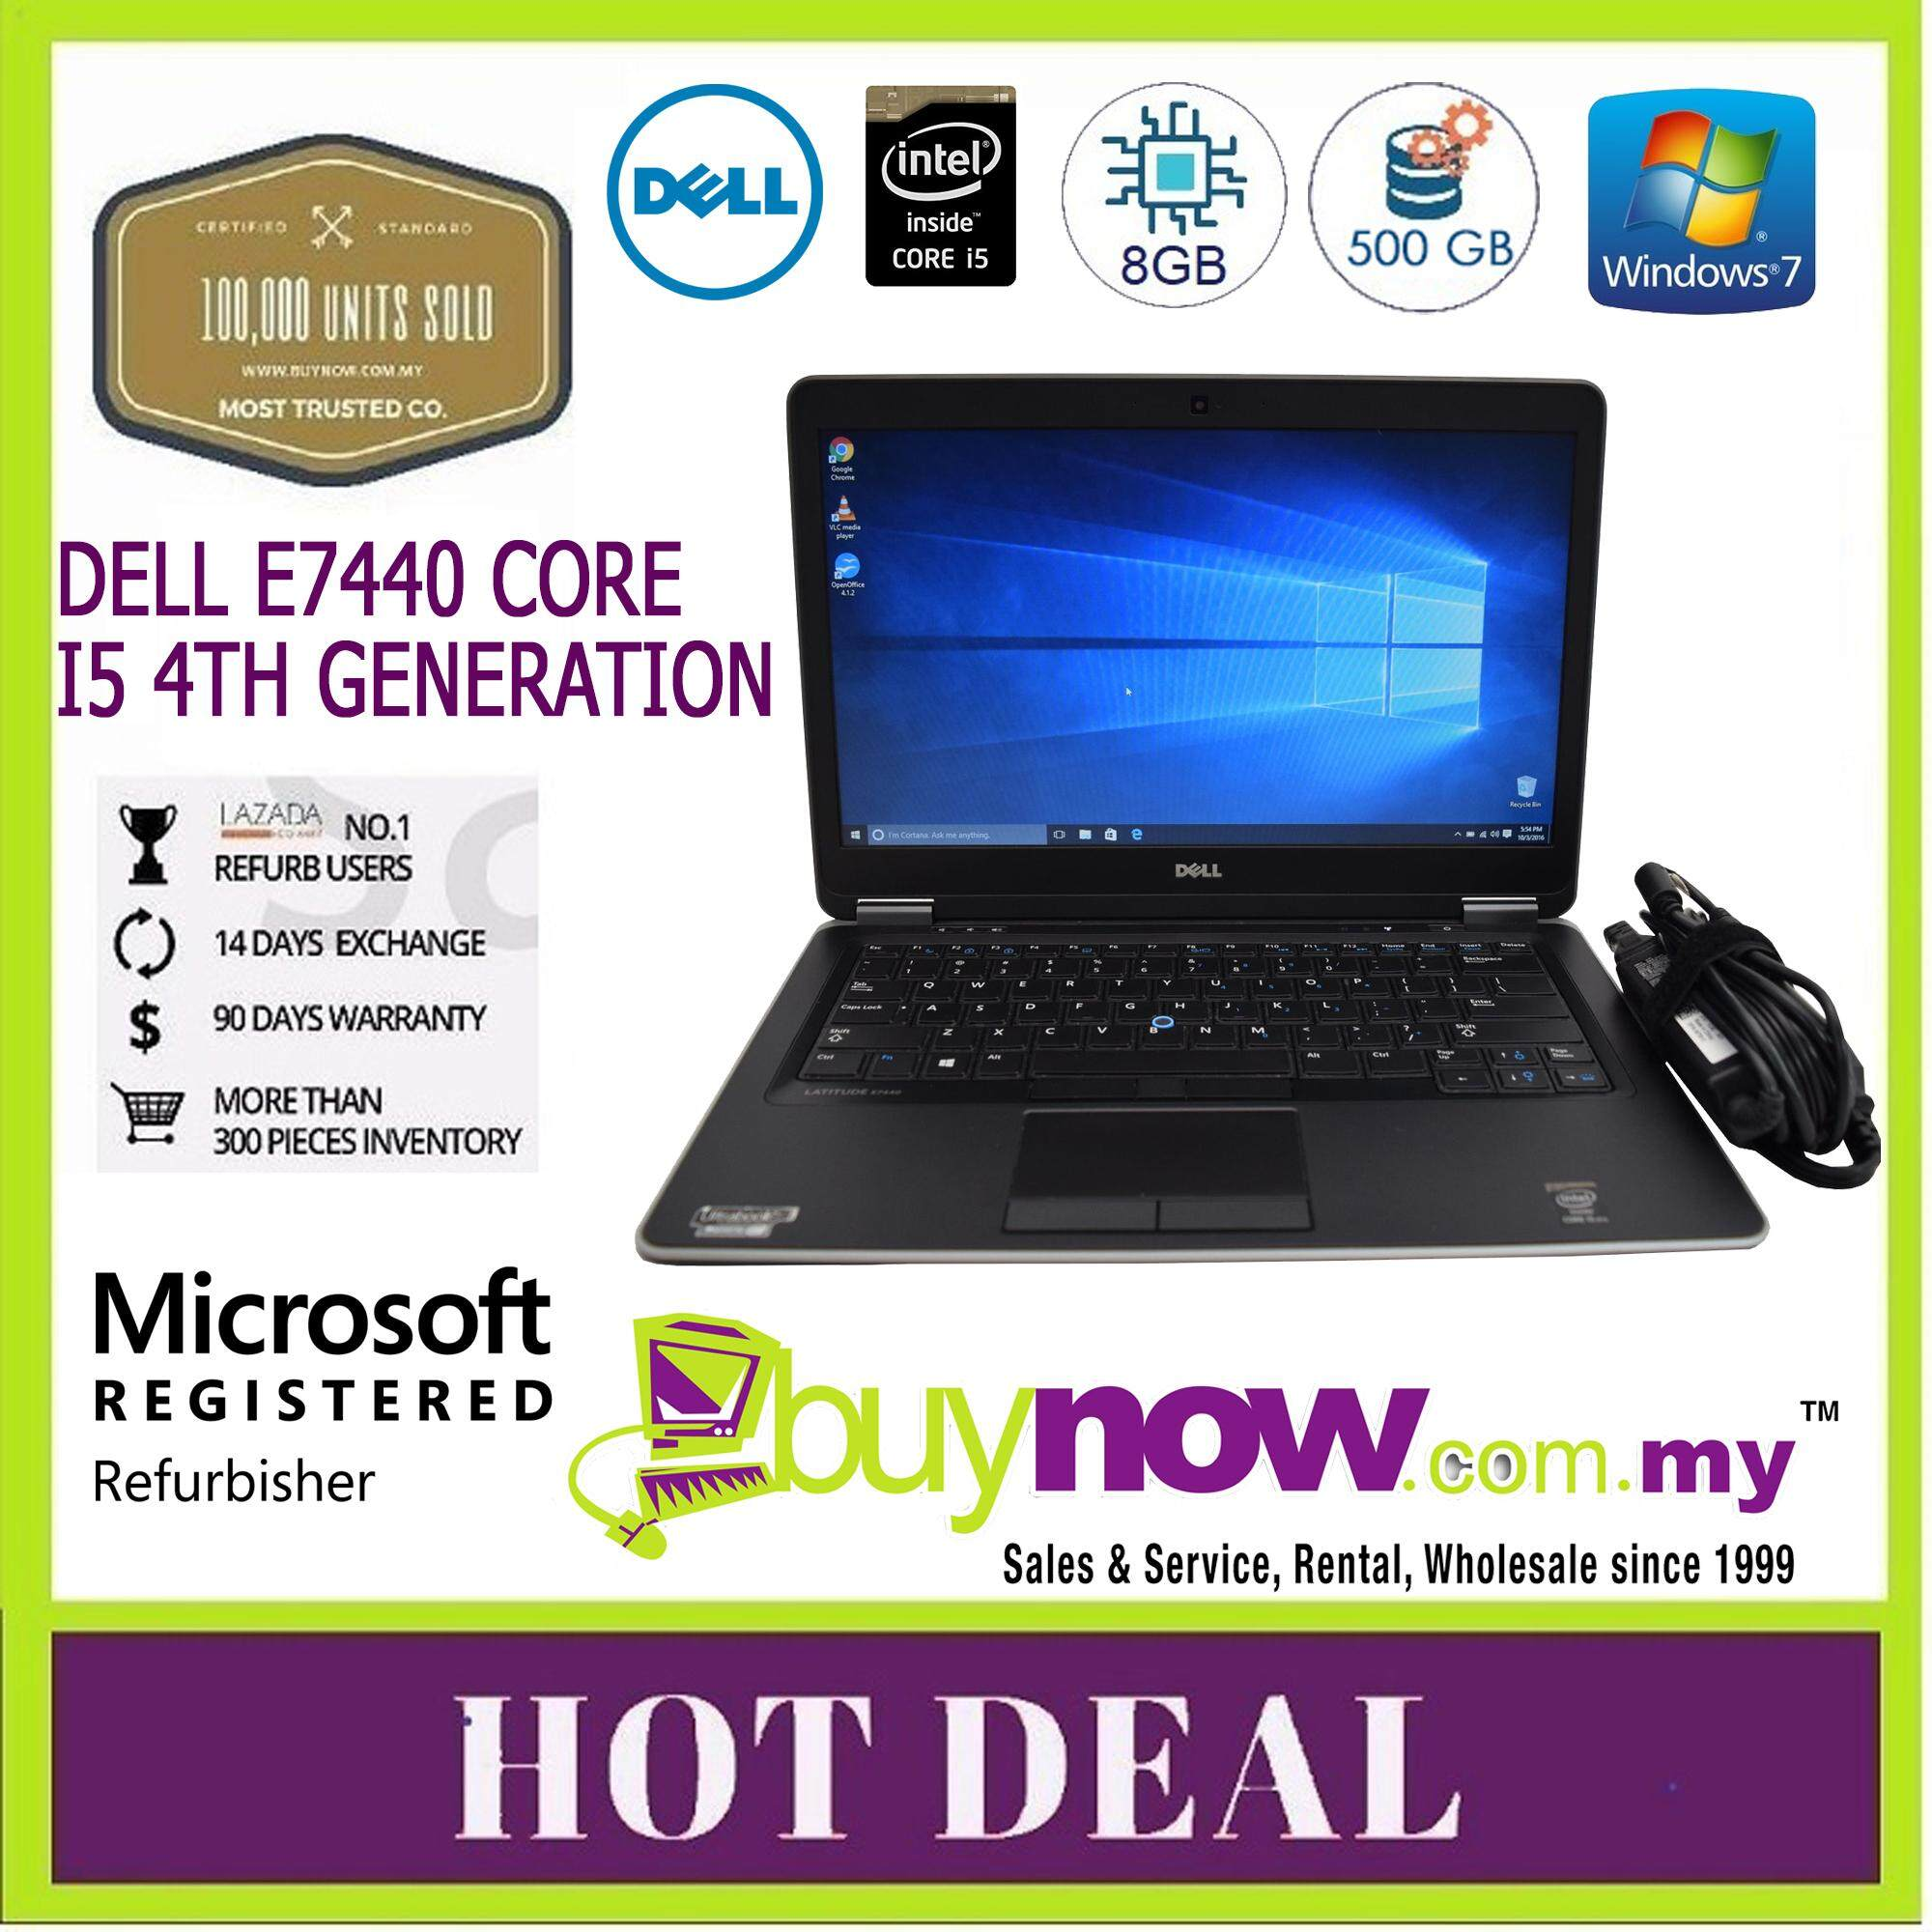 REFURBISHED USED LAPTOP NOTEBOOK COMPUTER PC ULTRA SLIM ULTRA THIN DELL LATITUDE E7440 CORE i5 4th GEN - 4200U 8GB DDR3L 500GB WINDOWS 7 PRO ORIGINAL GENUINE Malaysia